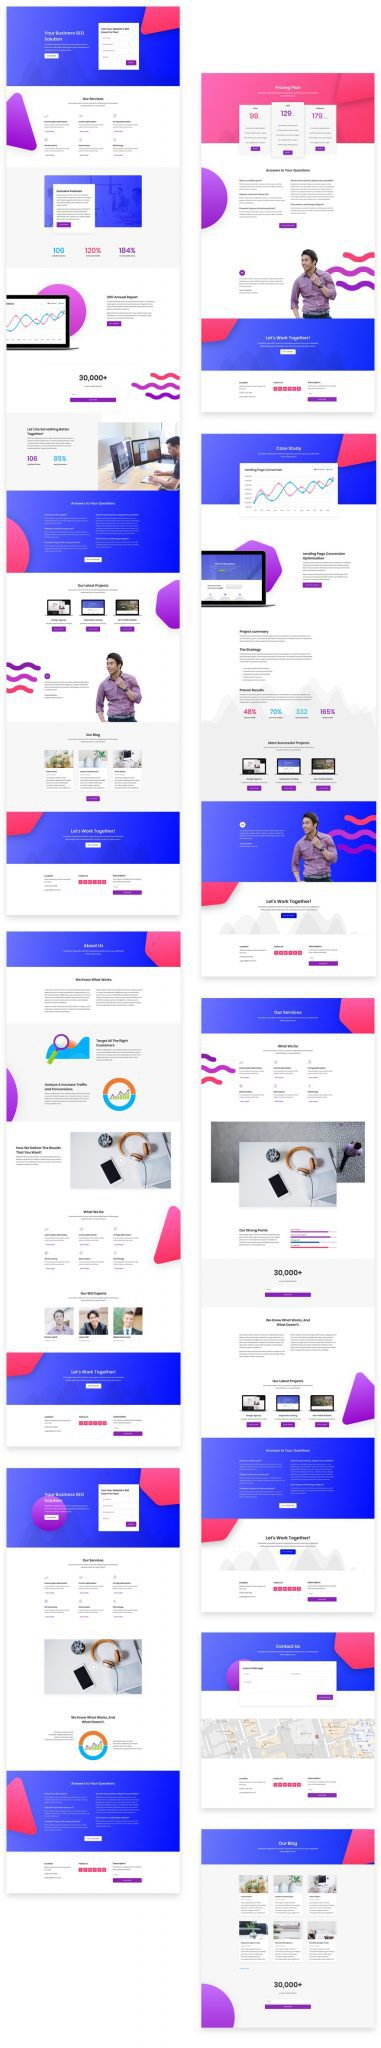 SEO Layout Pack